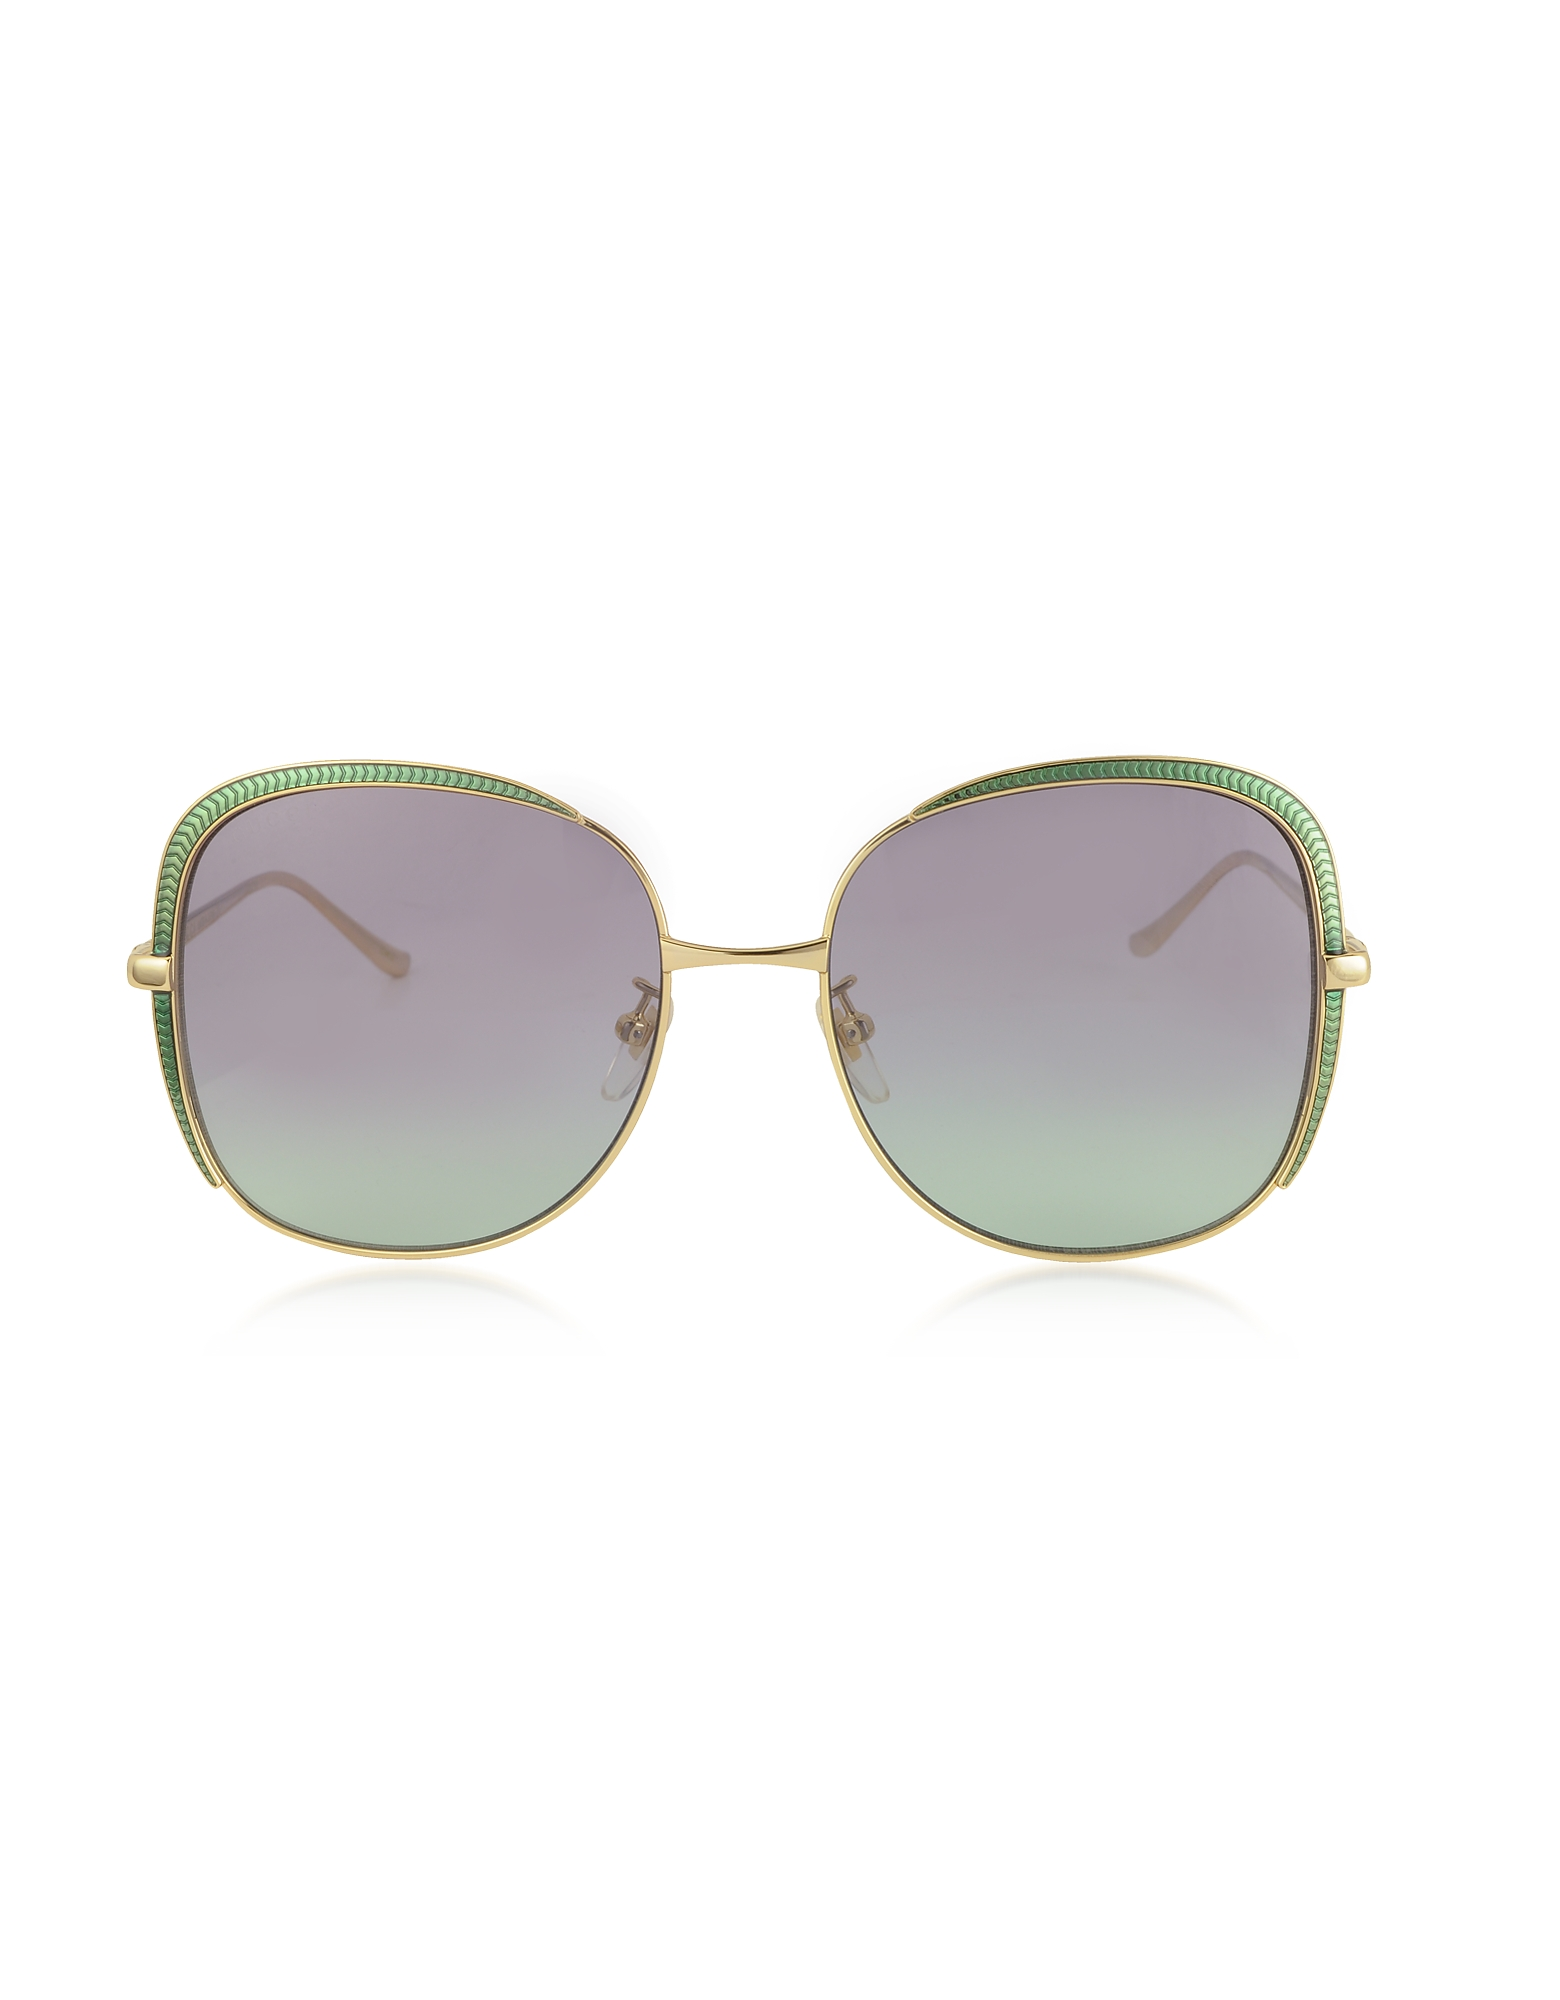 Gucci Designer Sunglasses, GG0400S Shiny Gold Guilloché Metal Frame Sunglasses